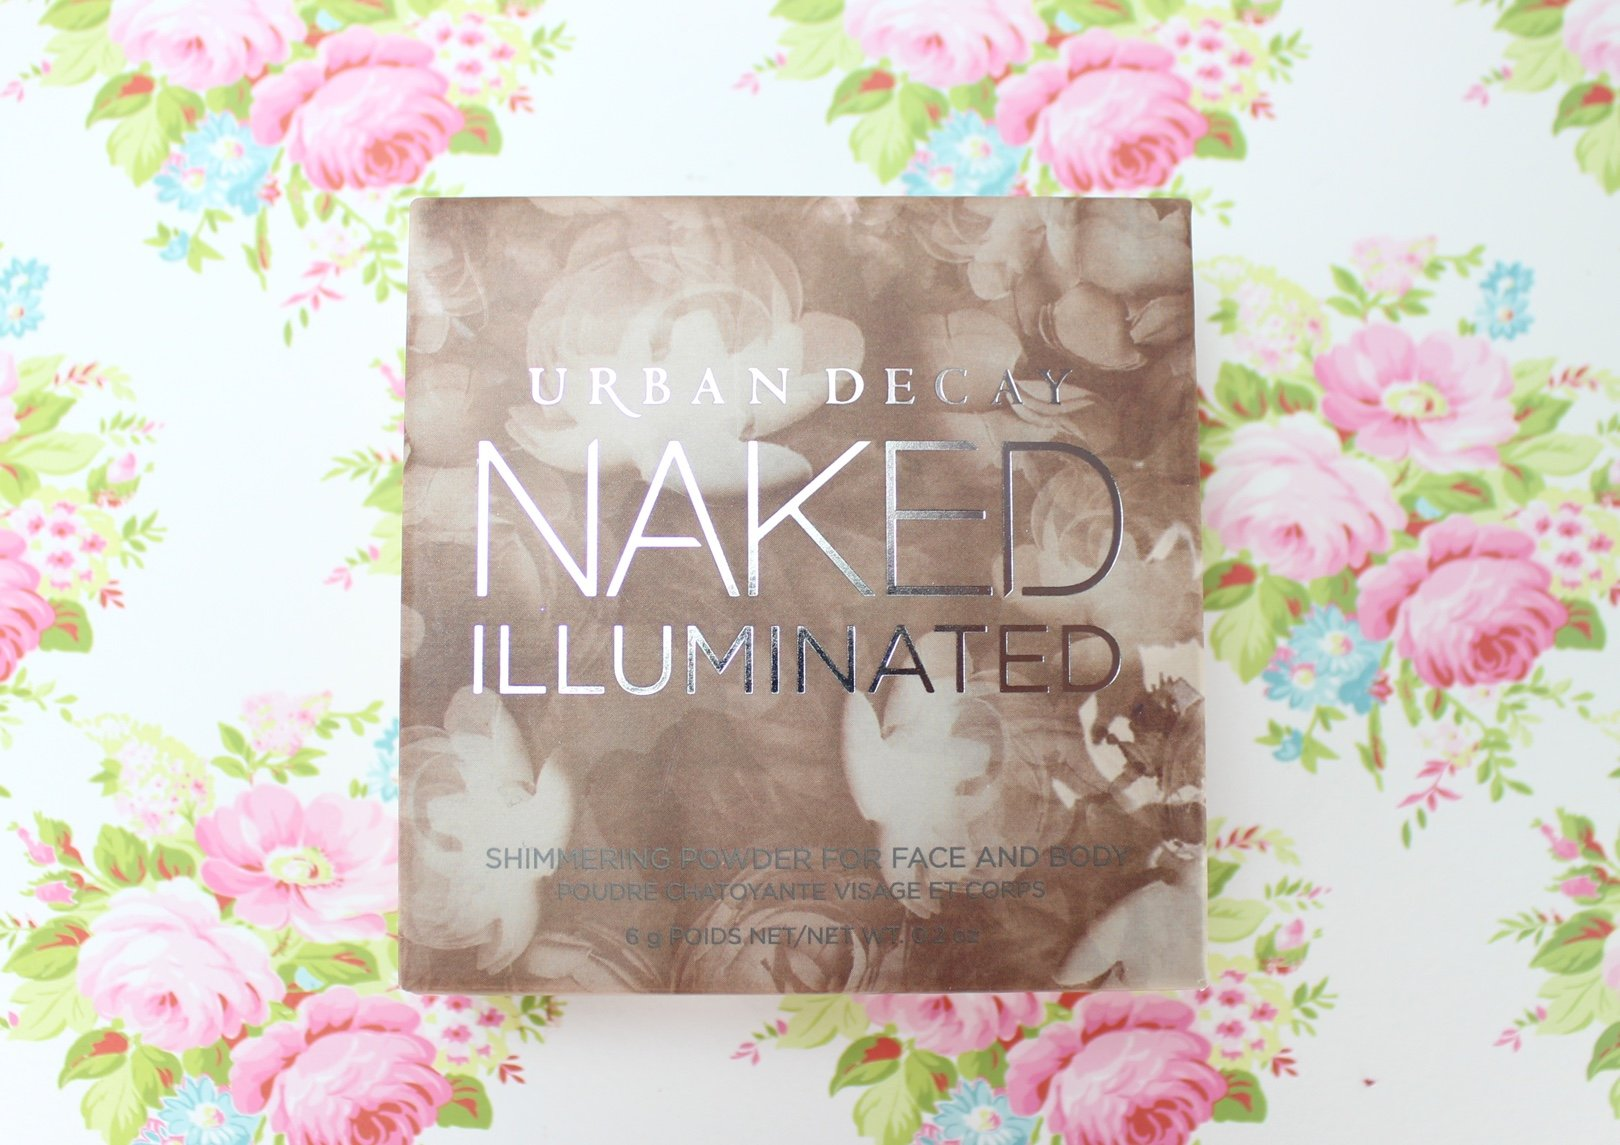 Urban Decay Naked Illuminated Powder - Luminous